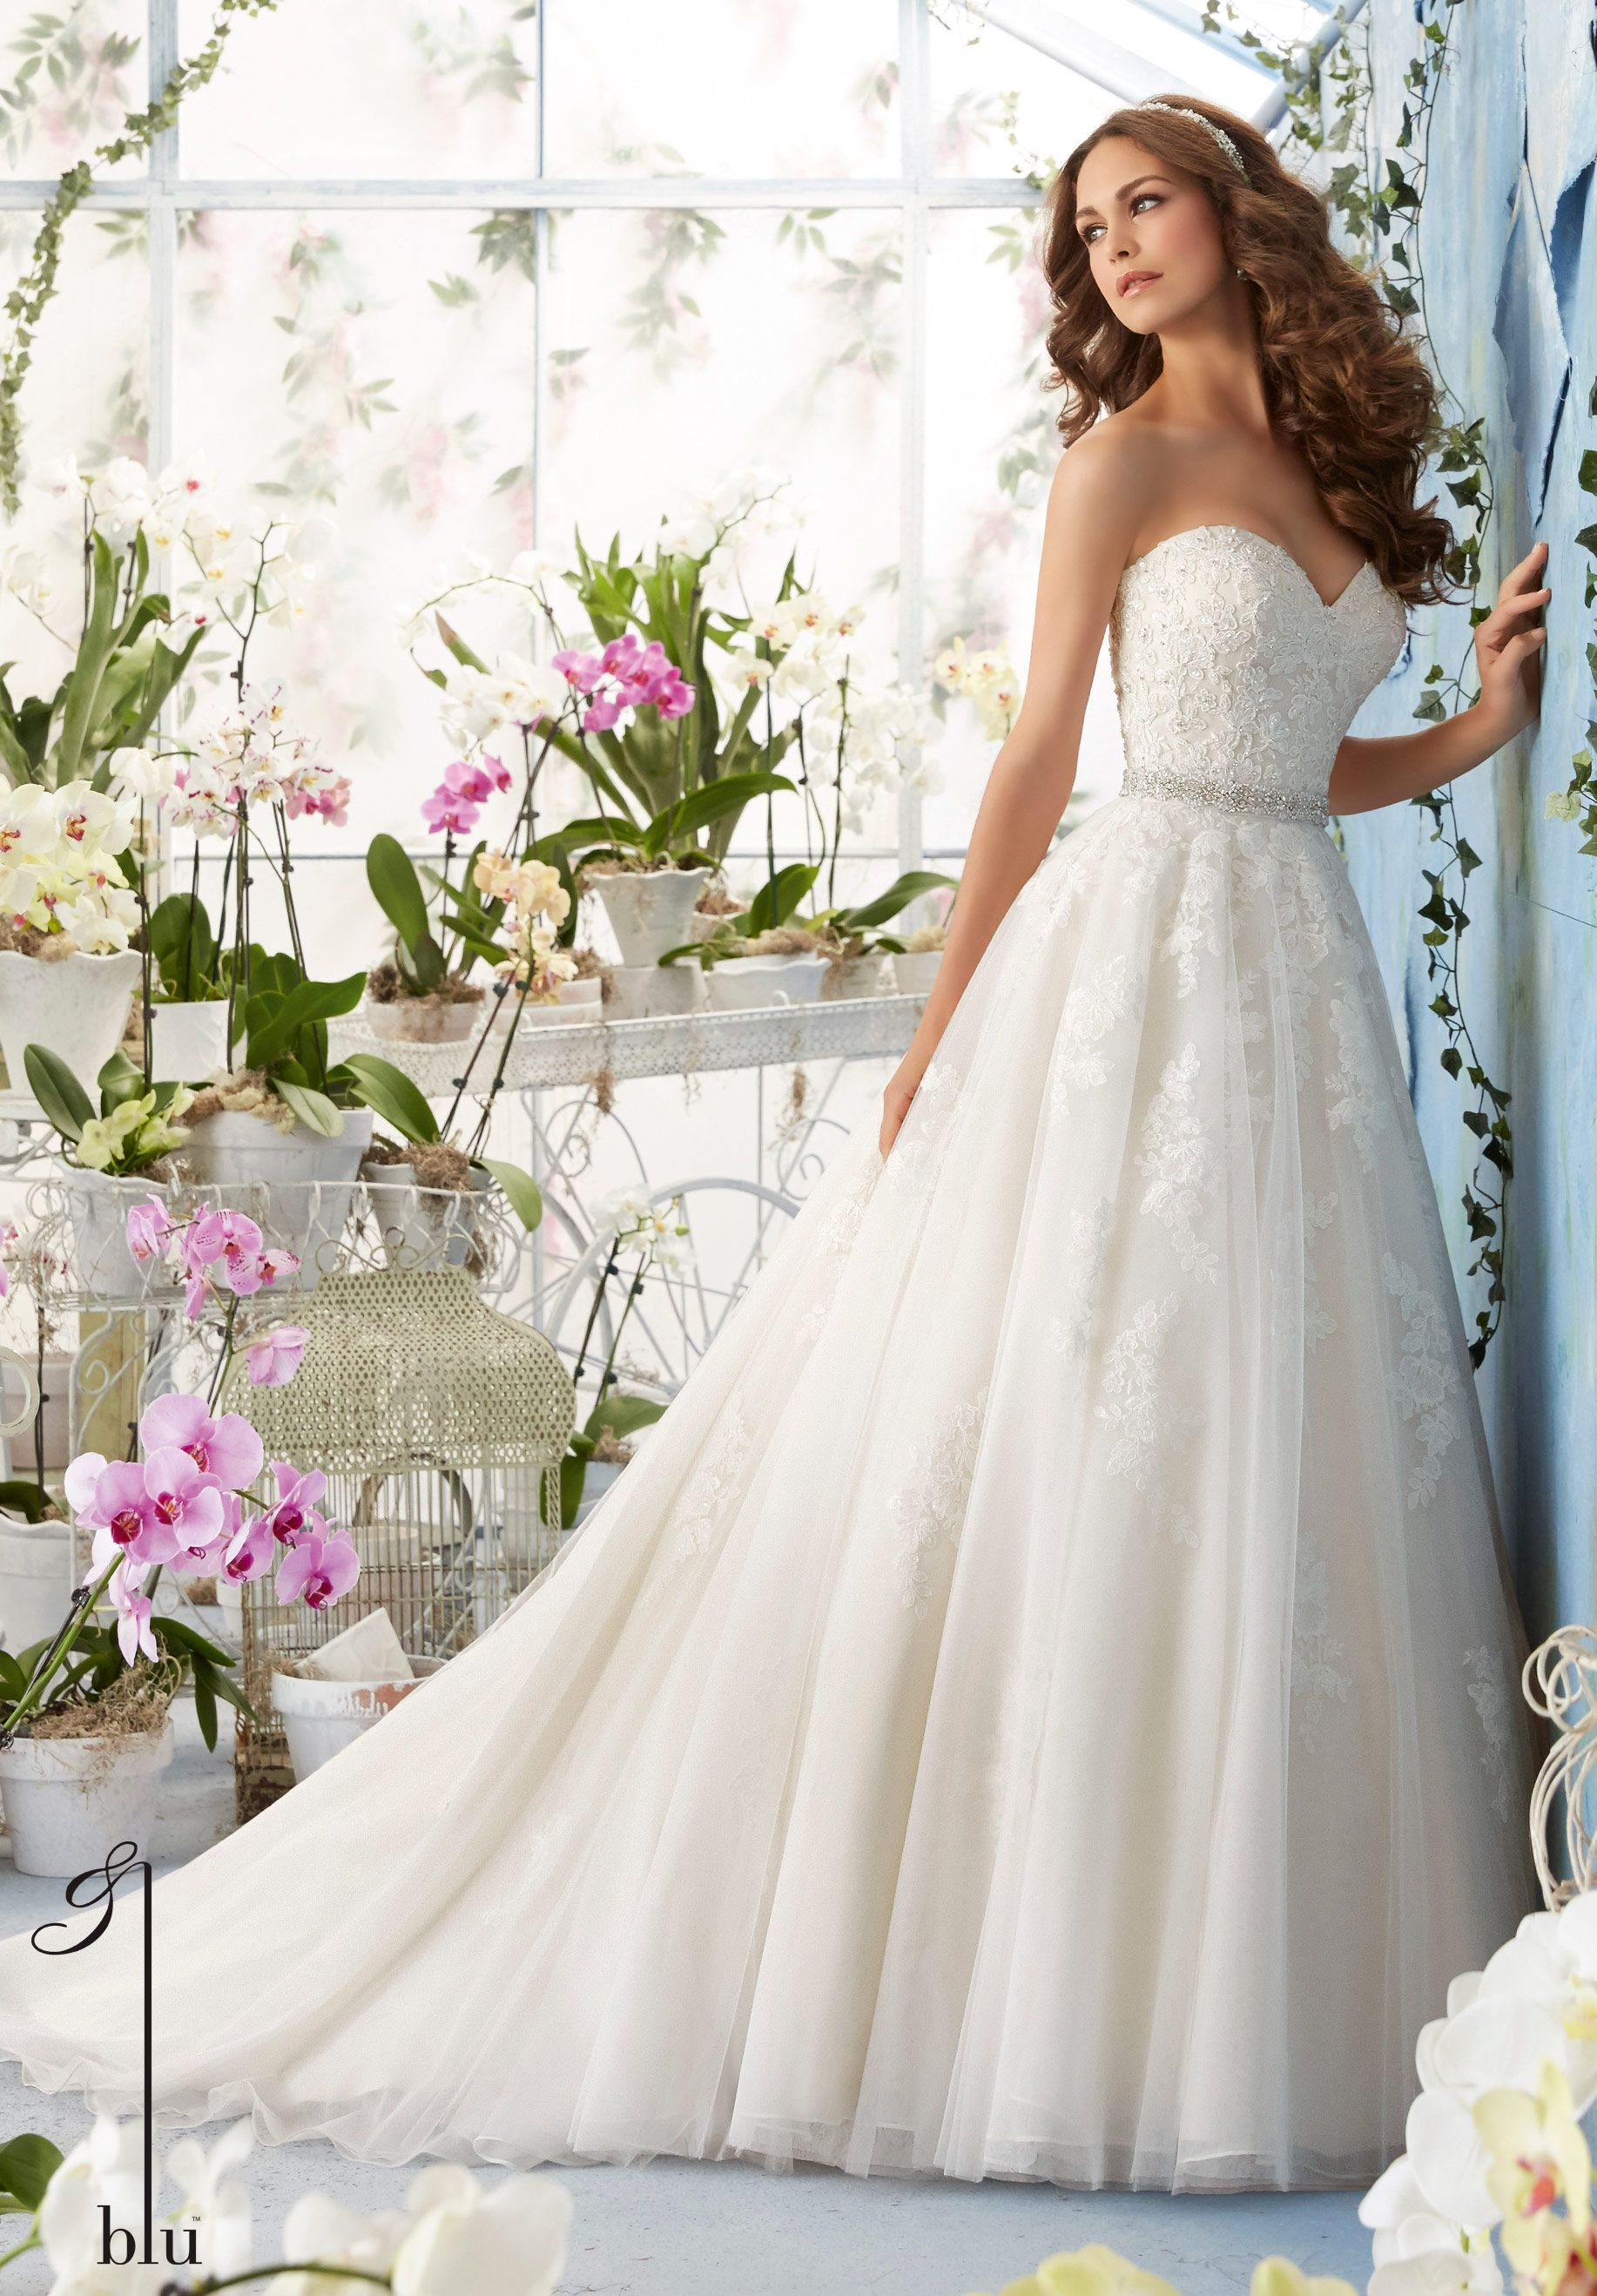 wedding gowns by blu featuring alencon lace appliques with crystal